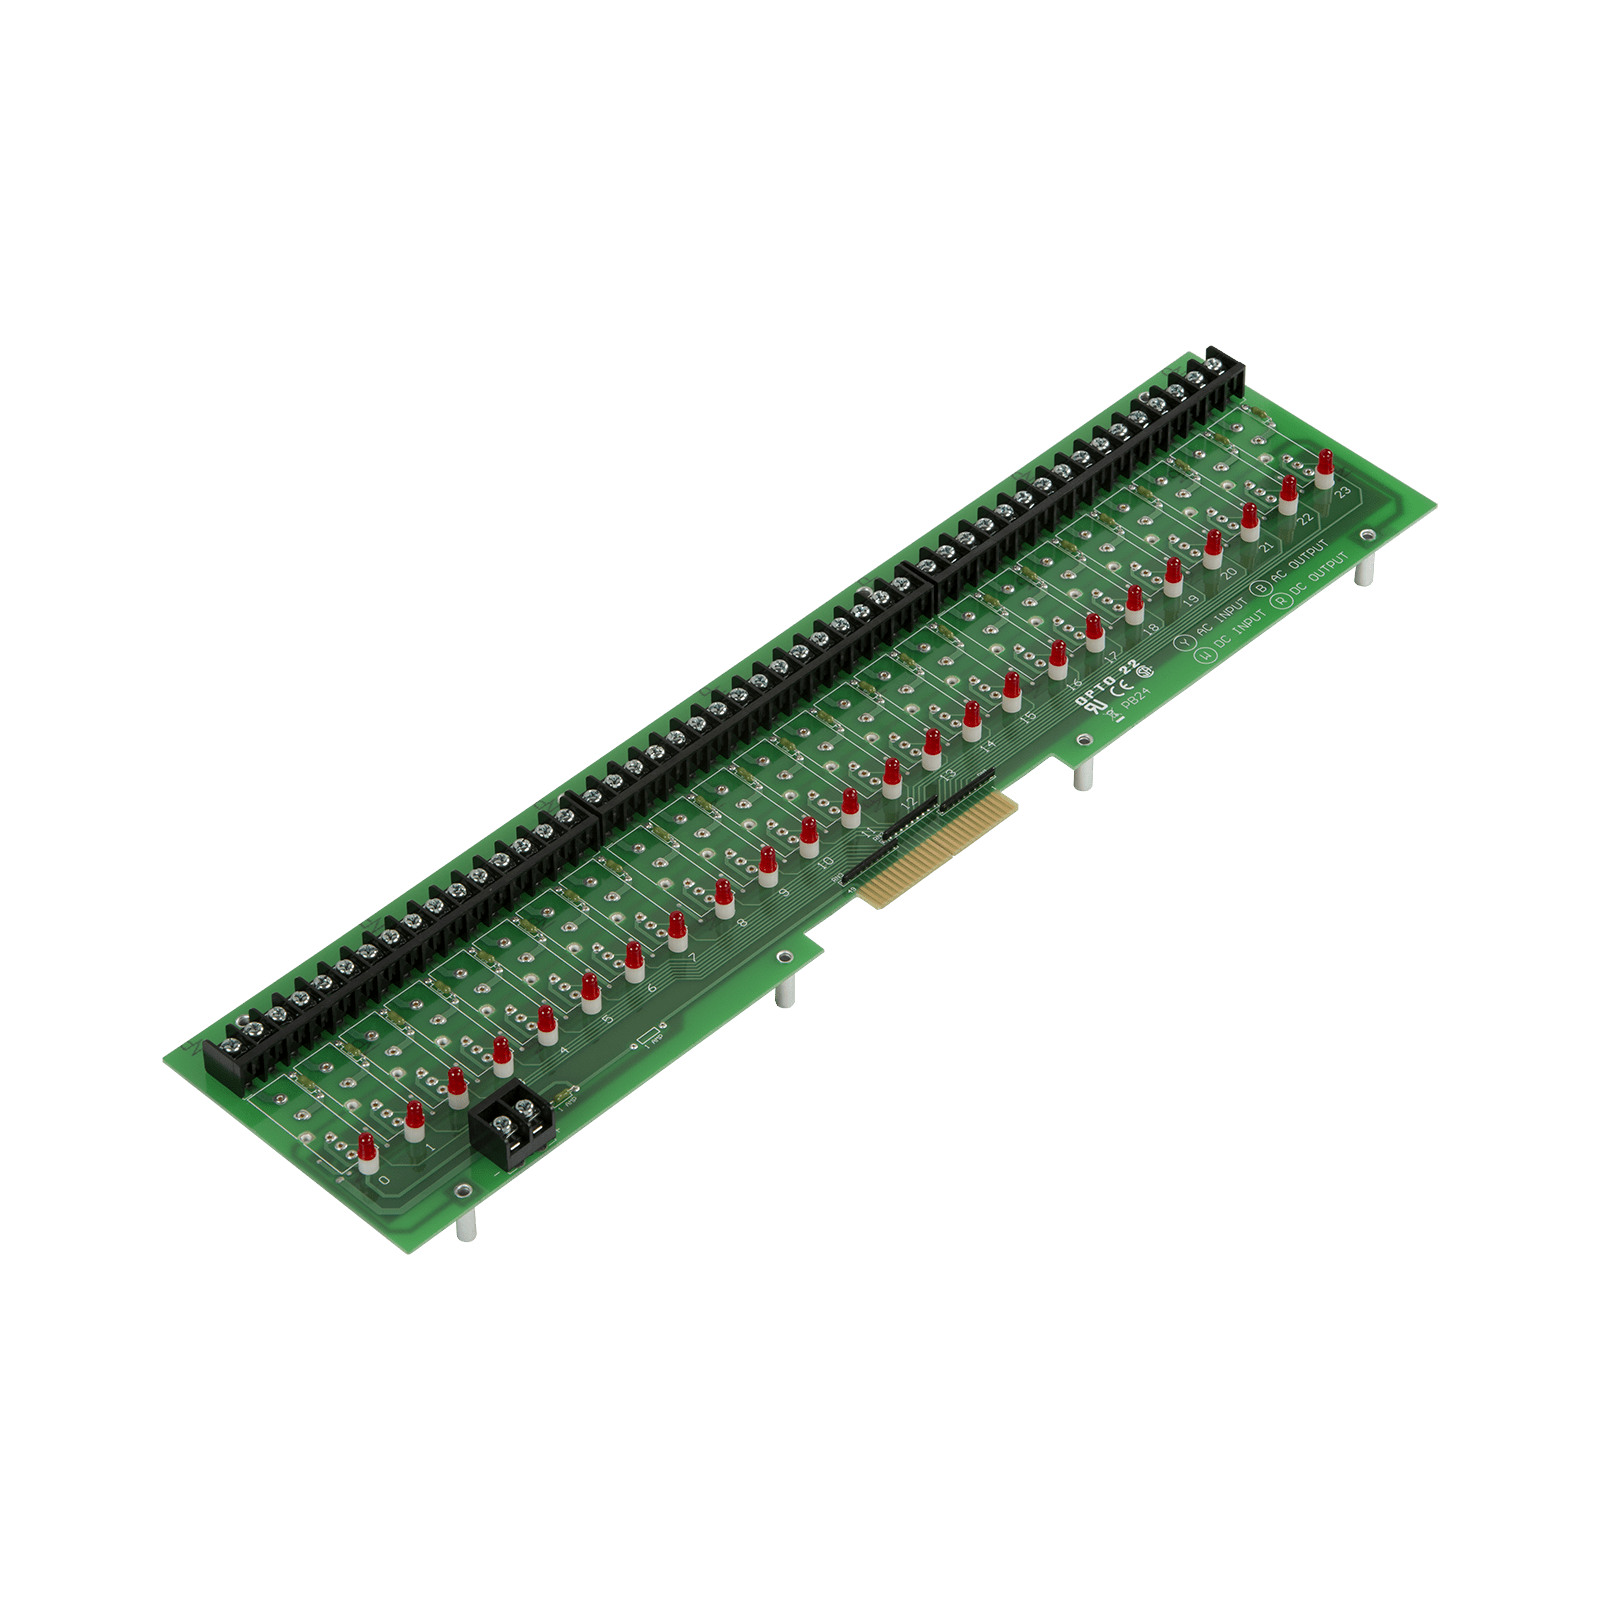 hight resolution of opto22 pb24 g1 24 channel i o module rack idec relay wiring diagram opto 22 relay wiring diagram